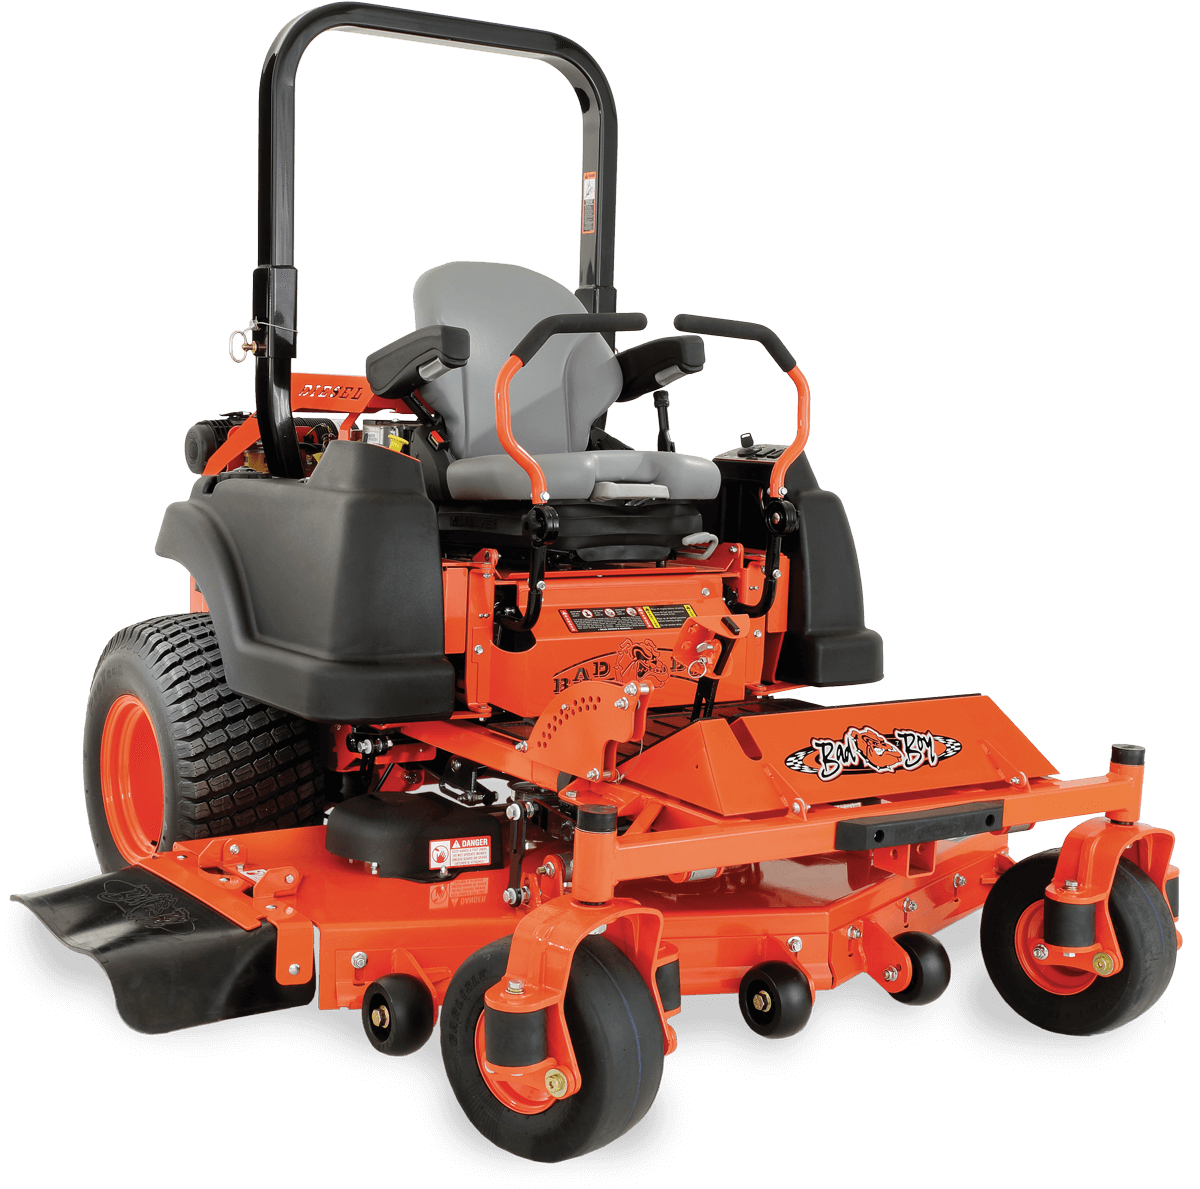 2016 Bad Boy Mowers Compact Diesel 6100 in Mechanicsburg, Pennsylvania